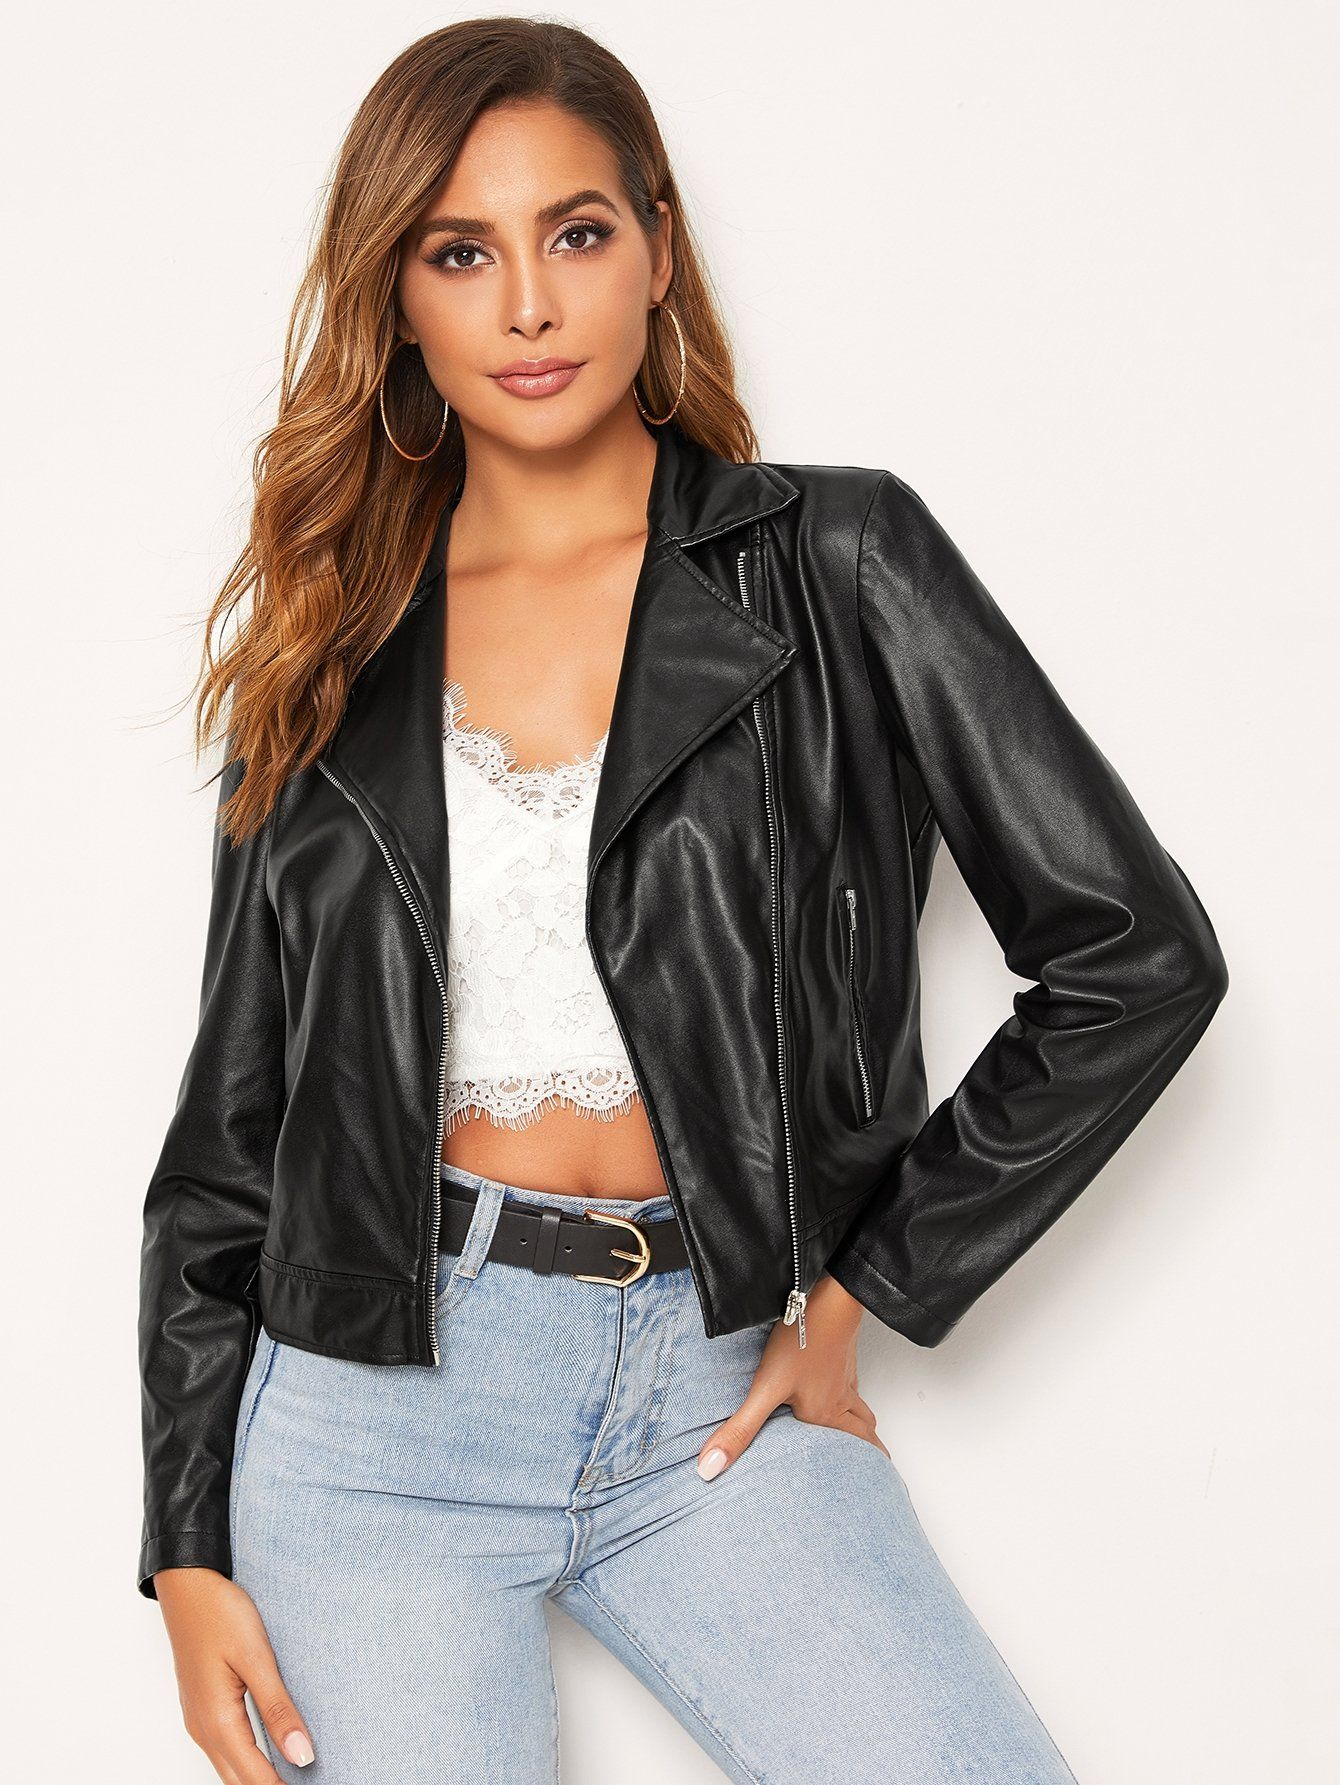 SHEIN Zipper Fly Water PU Leather Jacket Leather jacket